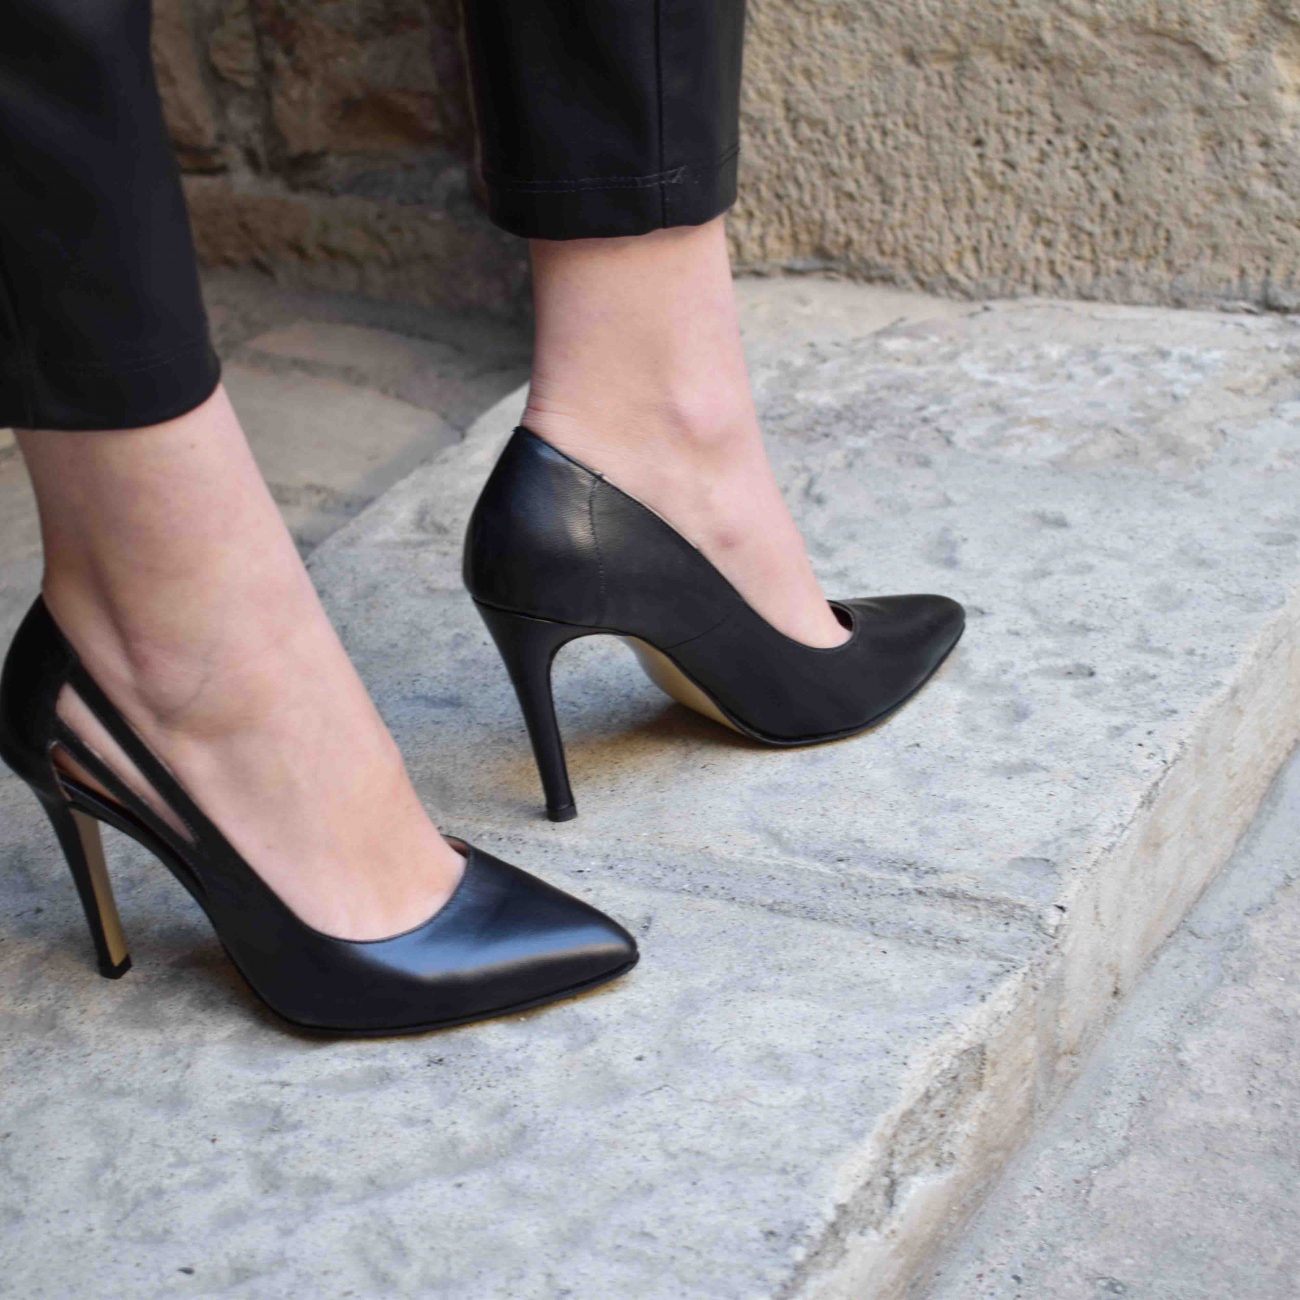 Lydia's black court shoe